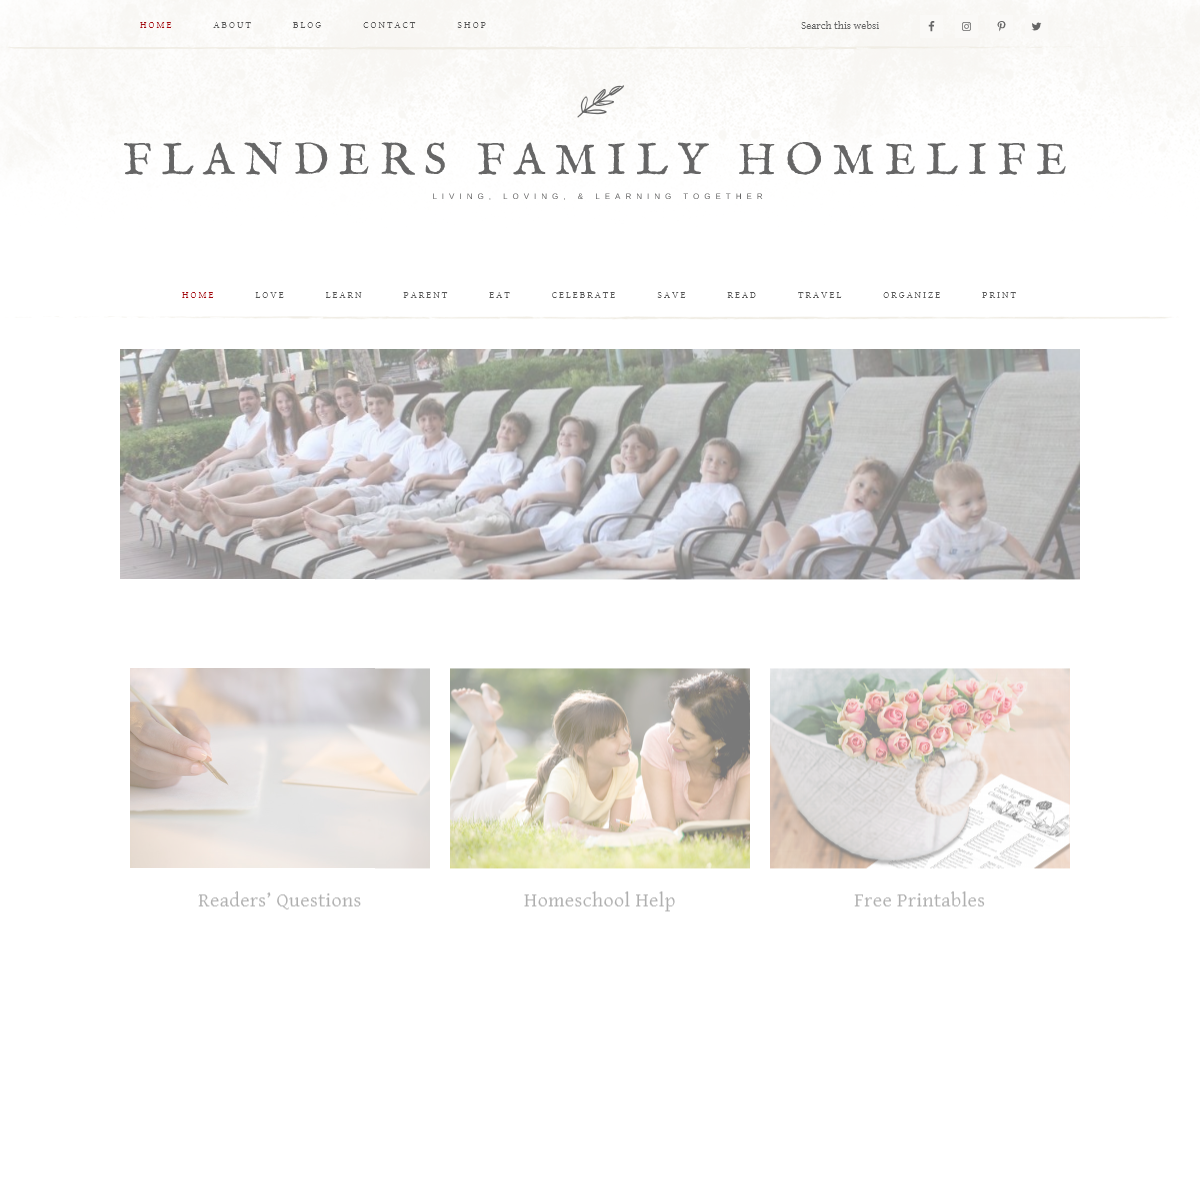 Flanders Family Homelife - Living, Loving, & Learning Together